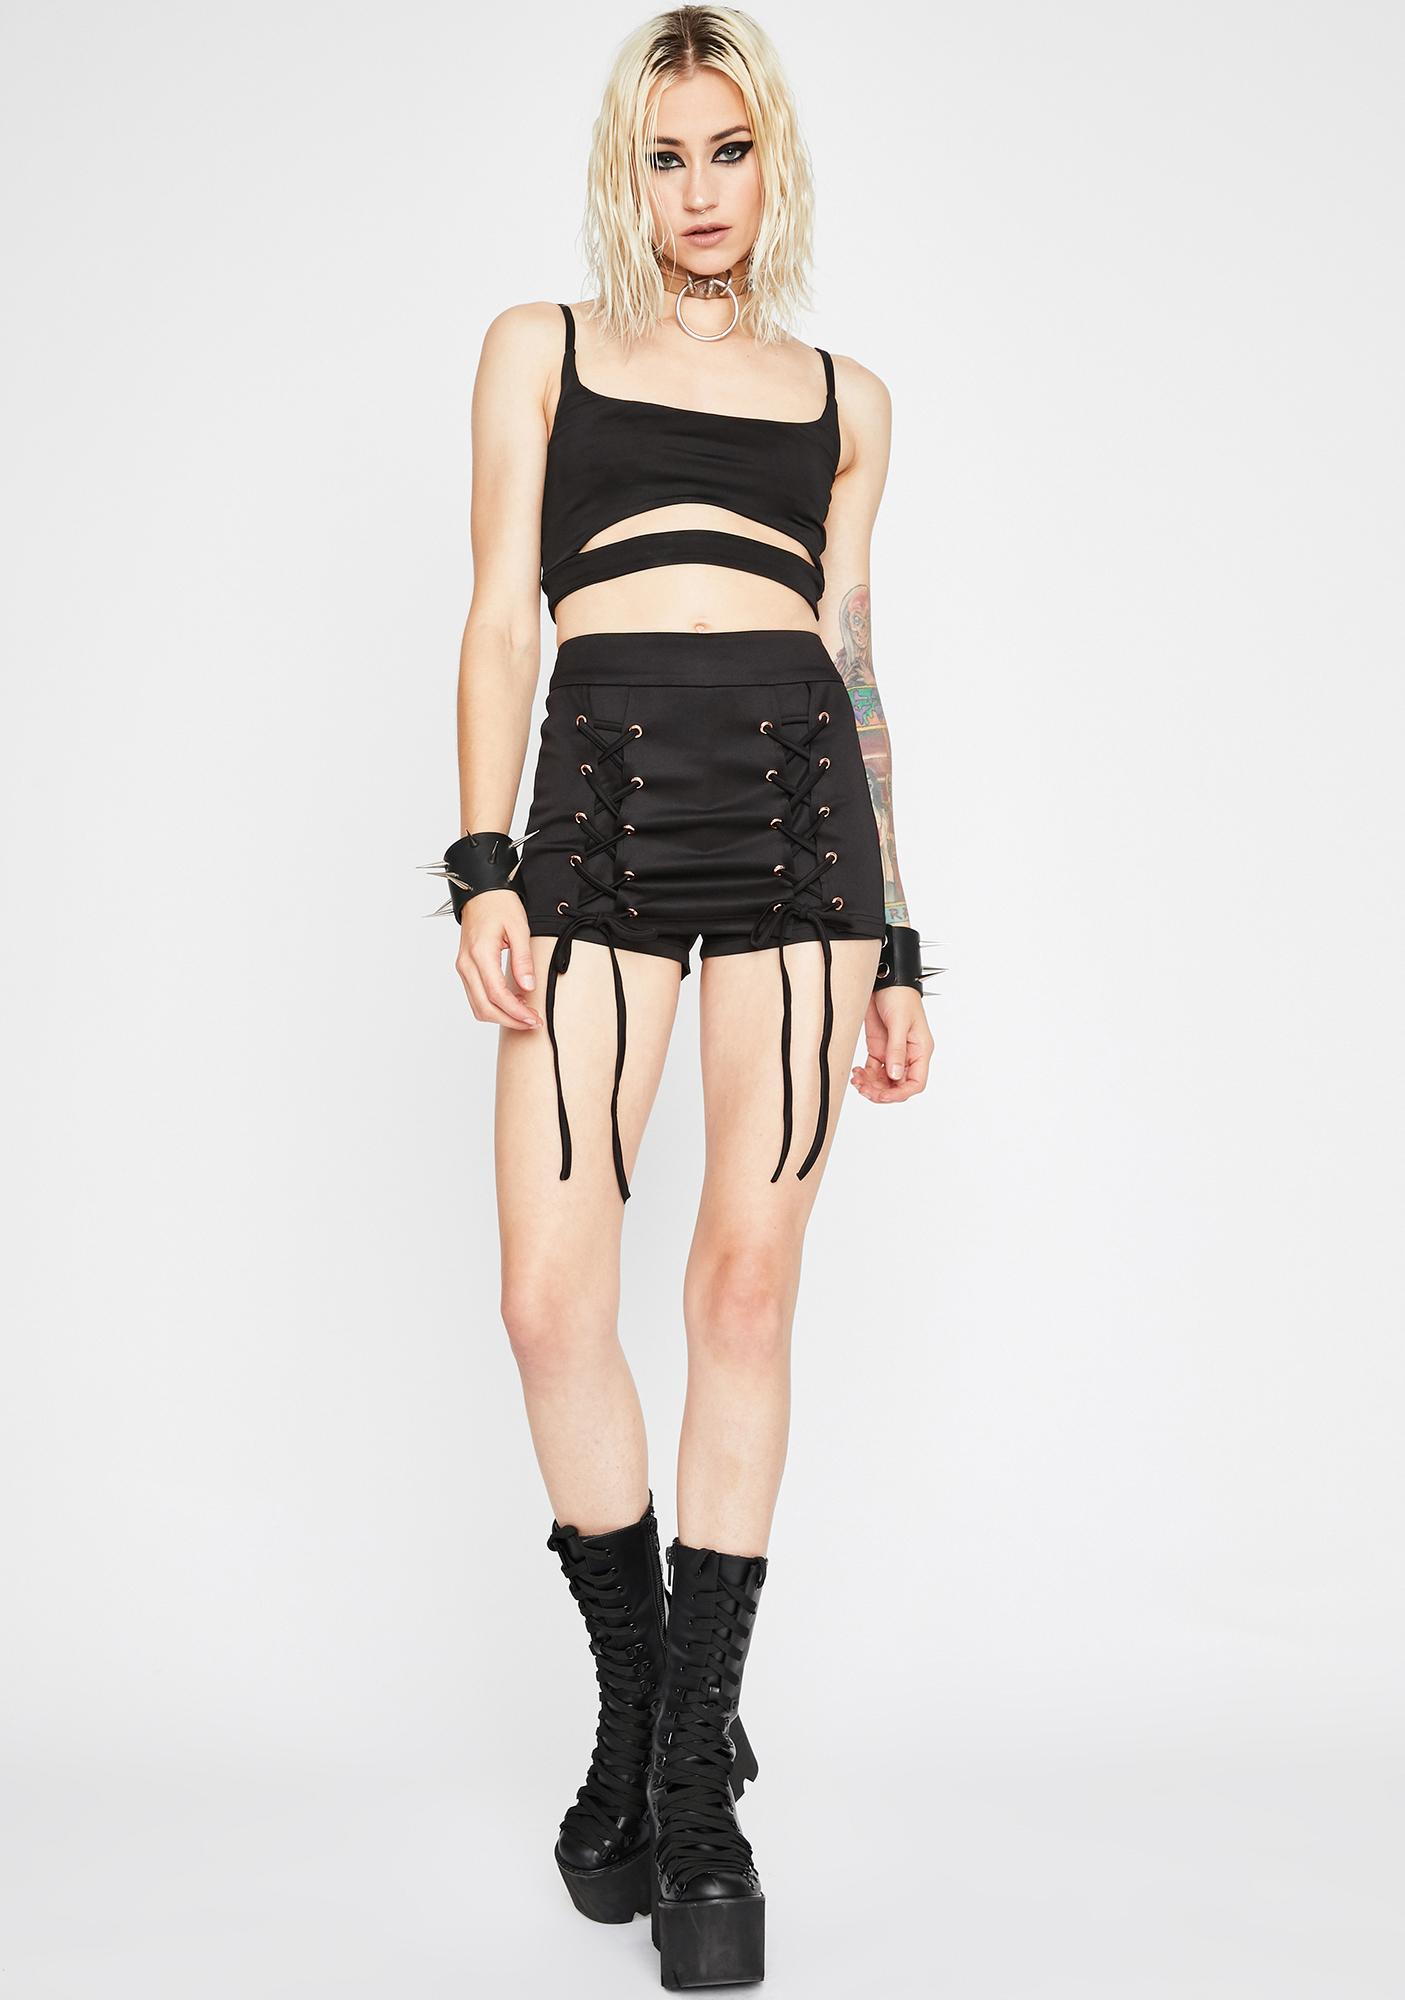 Raven Get It Poppin' Lace Up Skirt